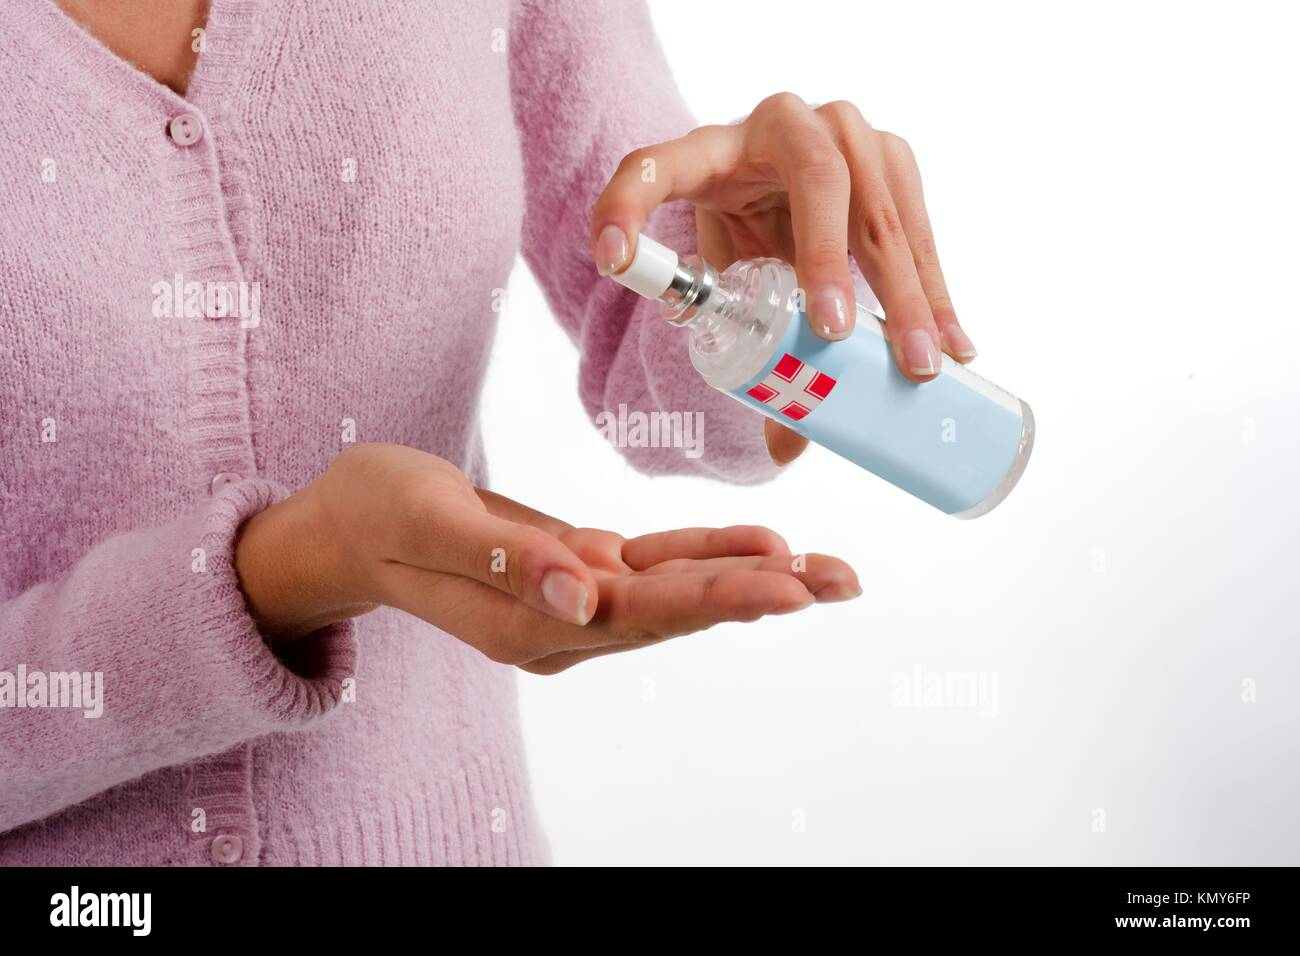 Woman squirts a squirt of antibacterial liquid soap into her palm - Stock Image